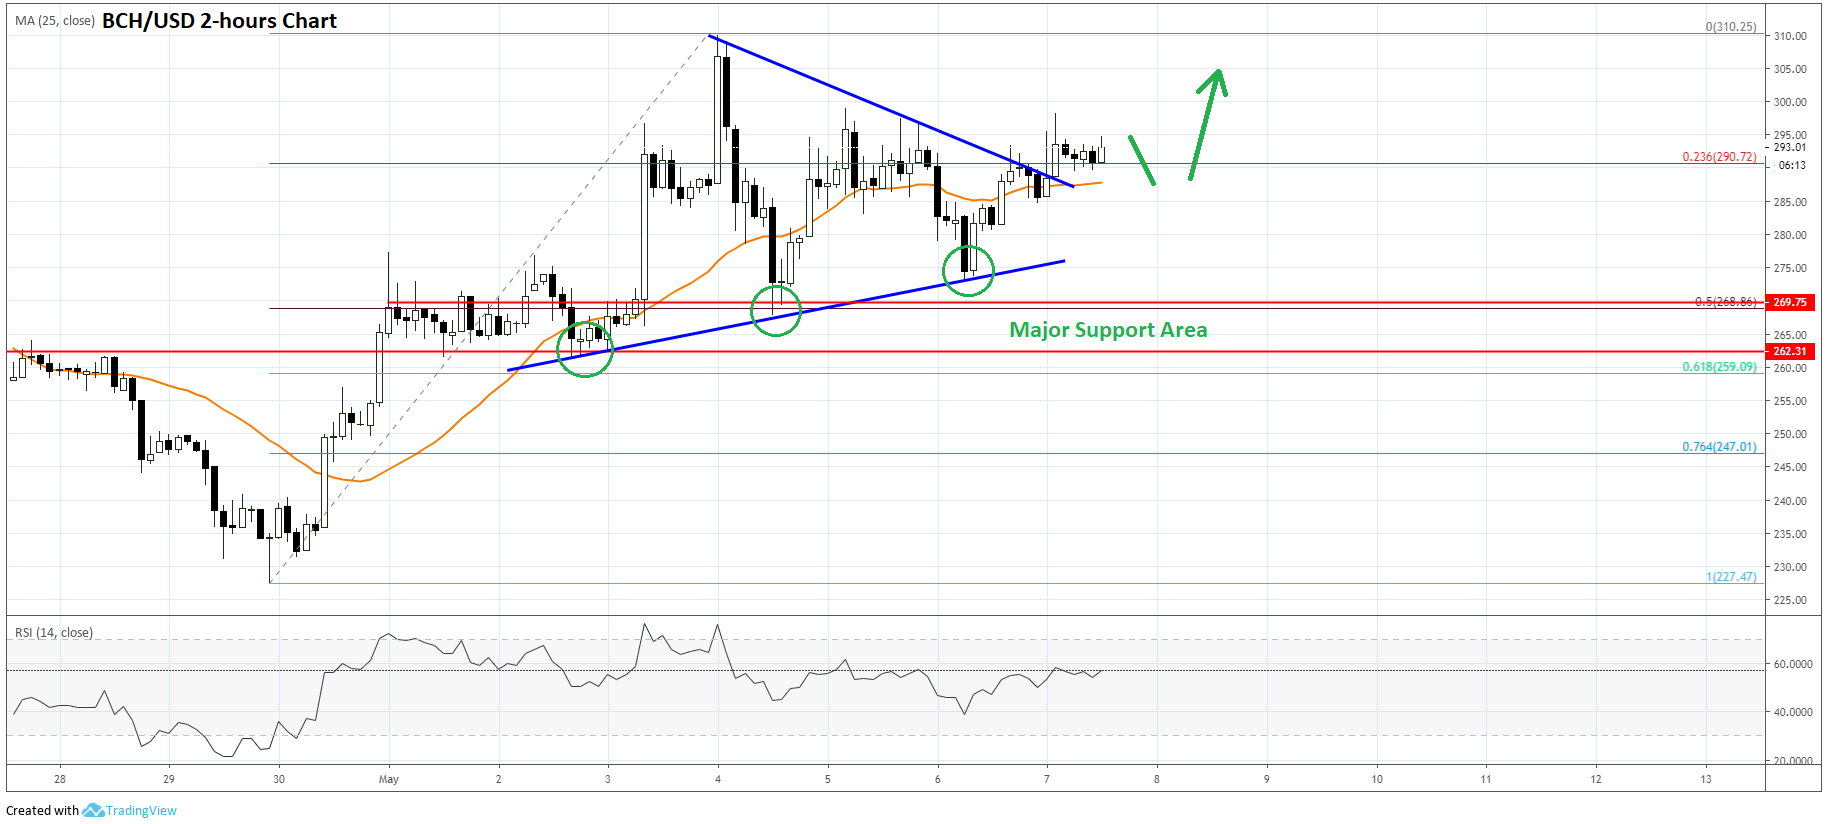 Bitcoin Cash (BCH) Price Prediction: Bulls Eyeing Fresh Monthly High